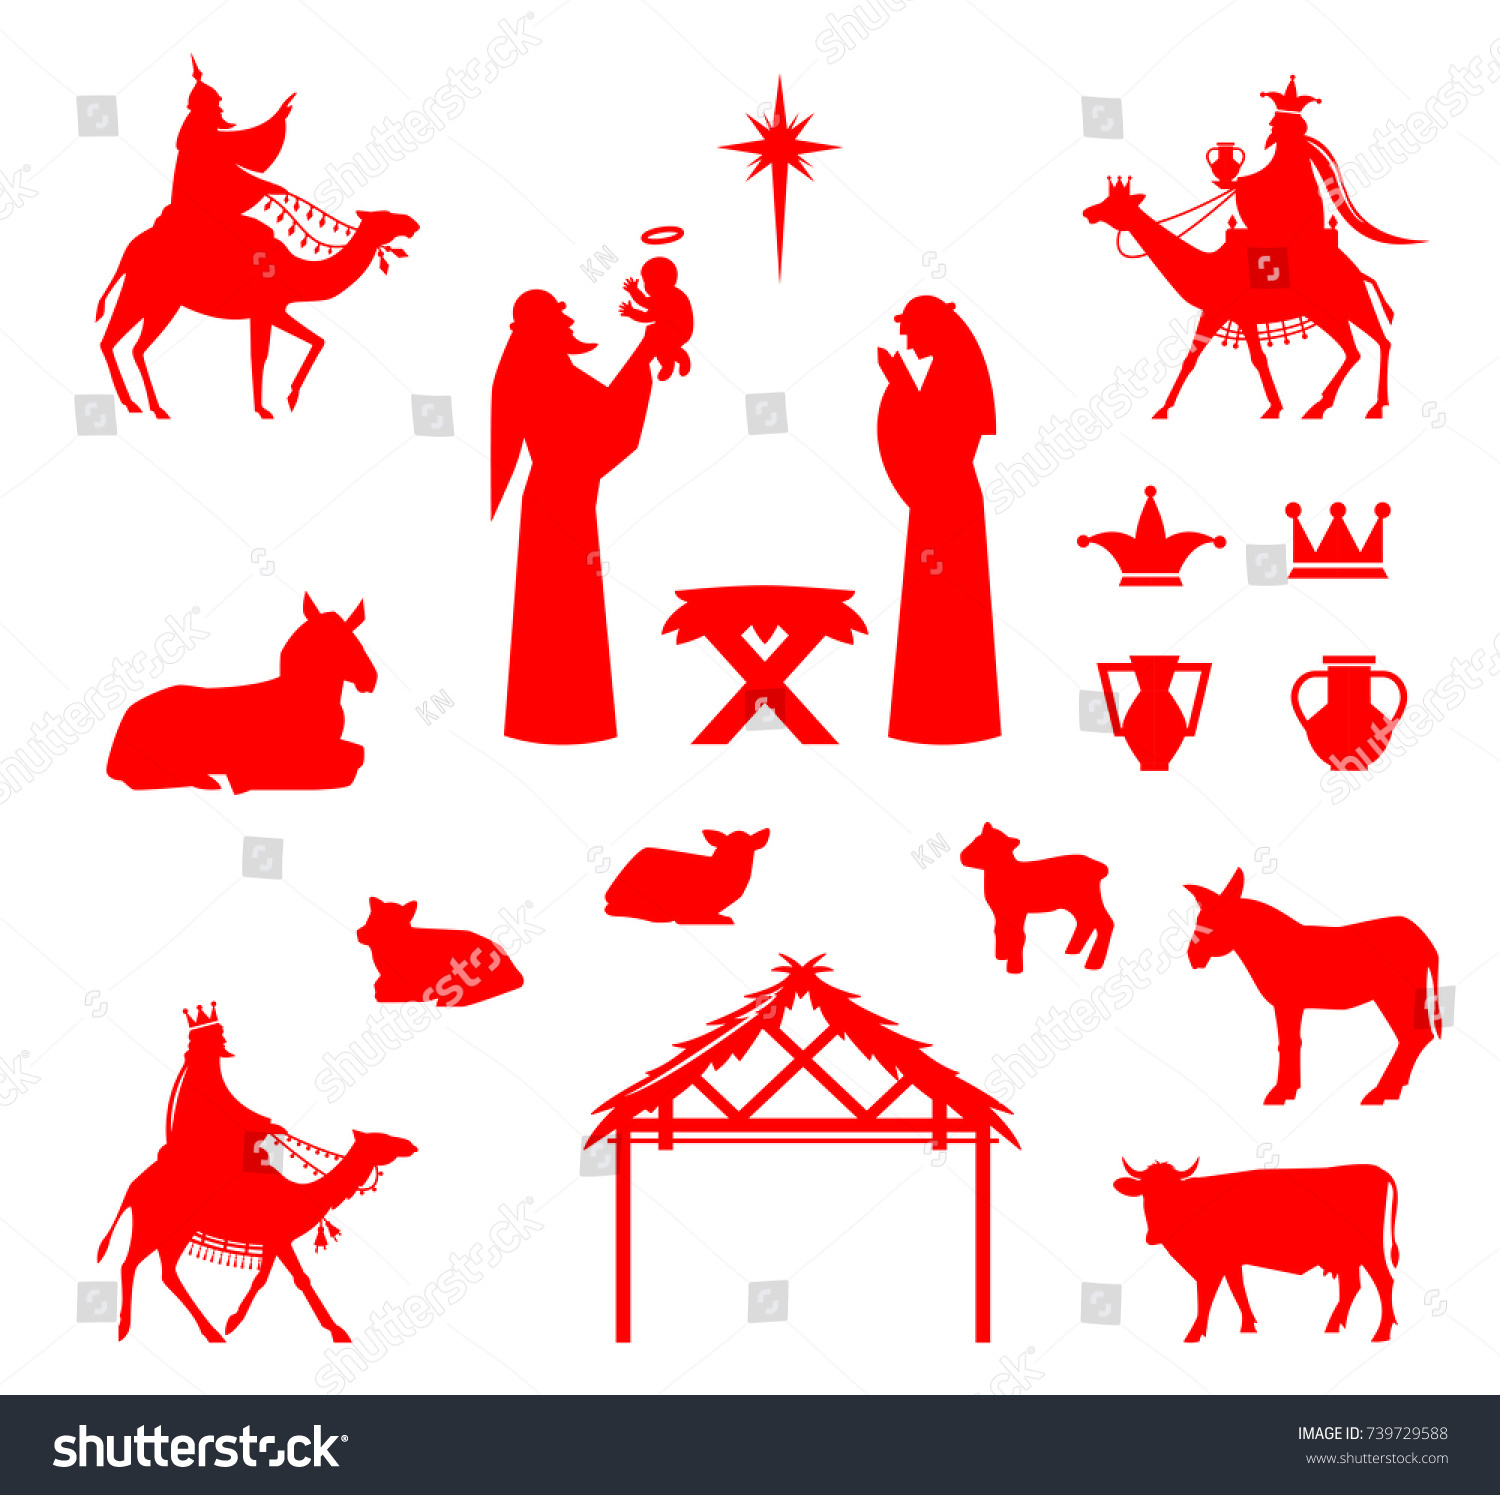 Set silhouettes traditional christian christmas nativity stock traditional christian christmas nativity scene of baby jesus in the manger with buycottarizona Image collections